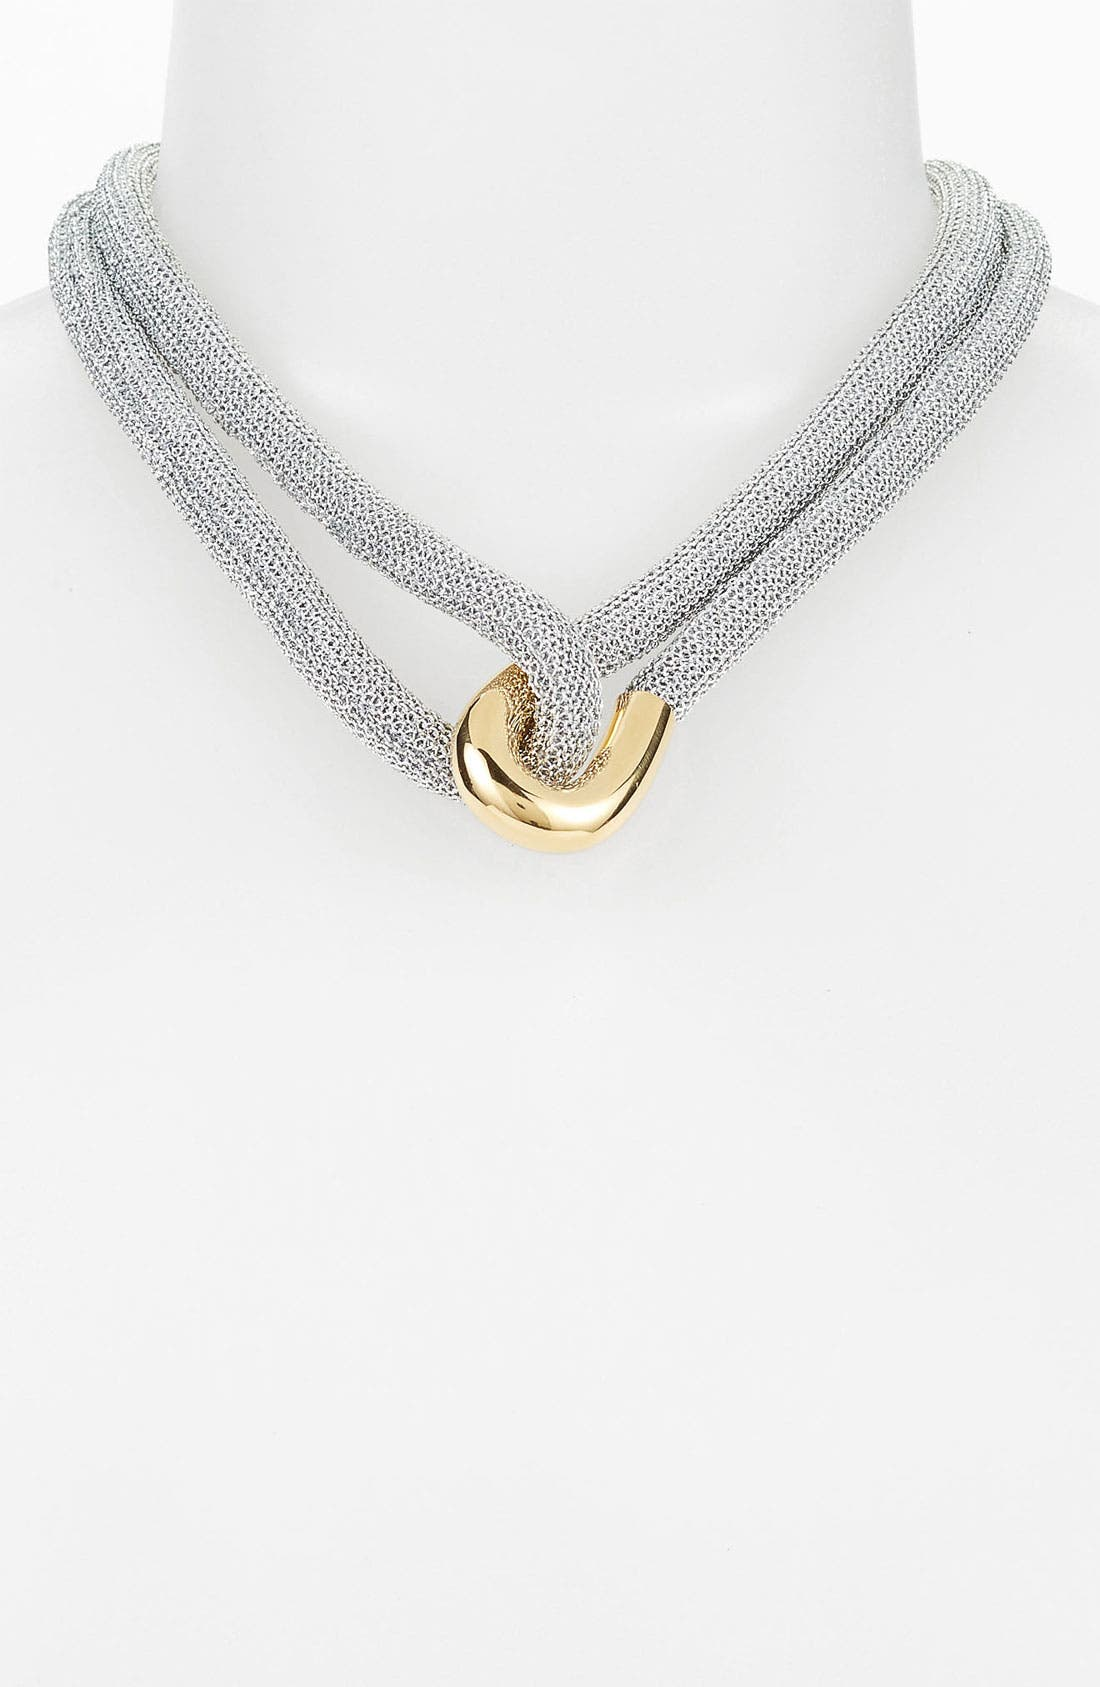 Alternate Image 1 Selected - Adami & Martucci 'Mesh' Collar Necklace (Nordstrom Exclusive)